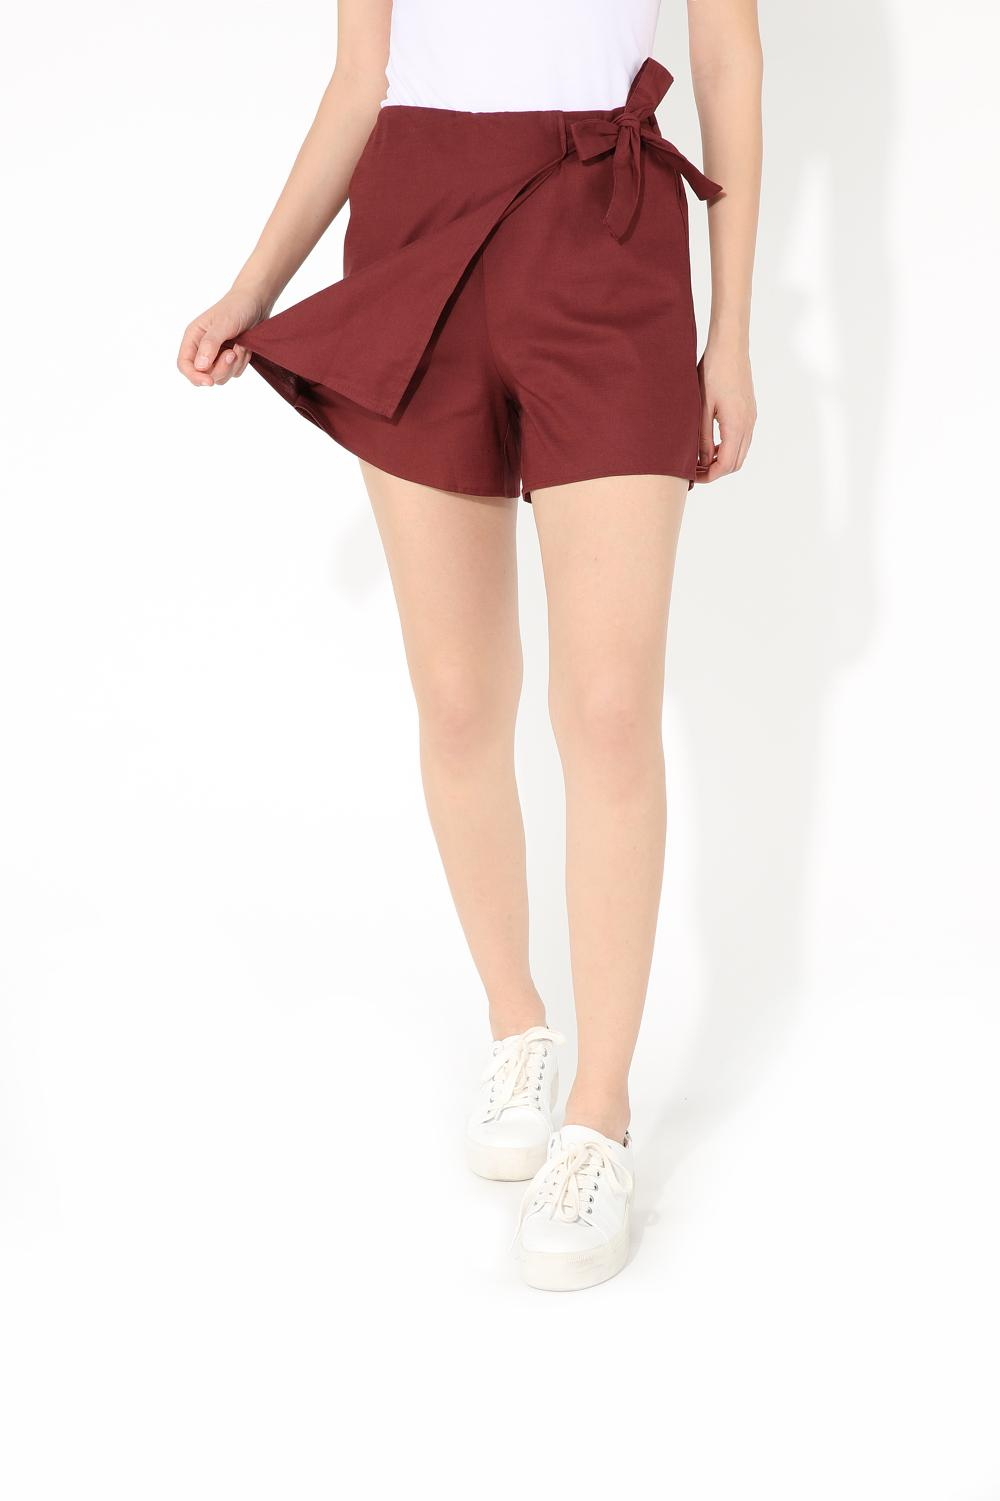 Vintage Bow Tie Shorts